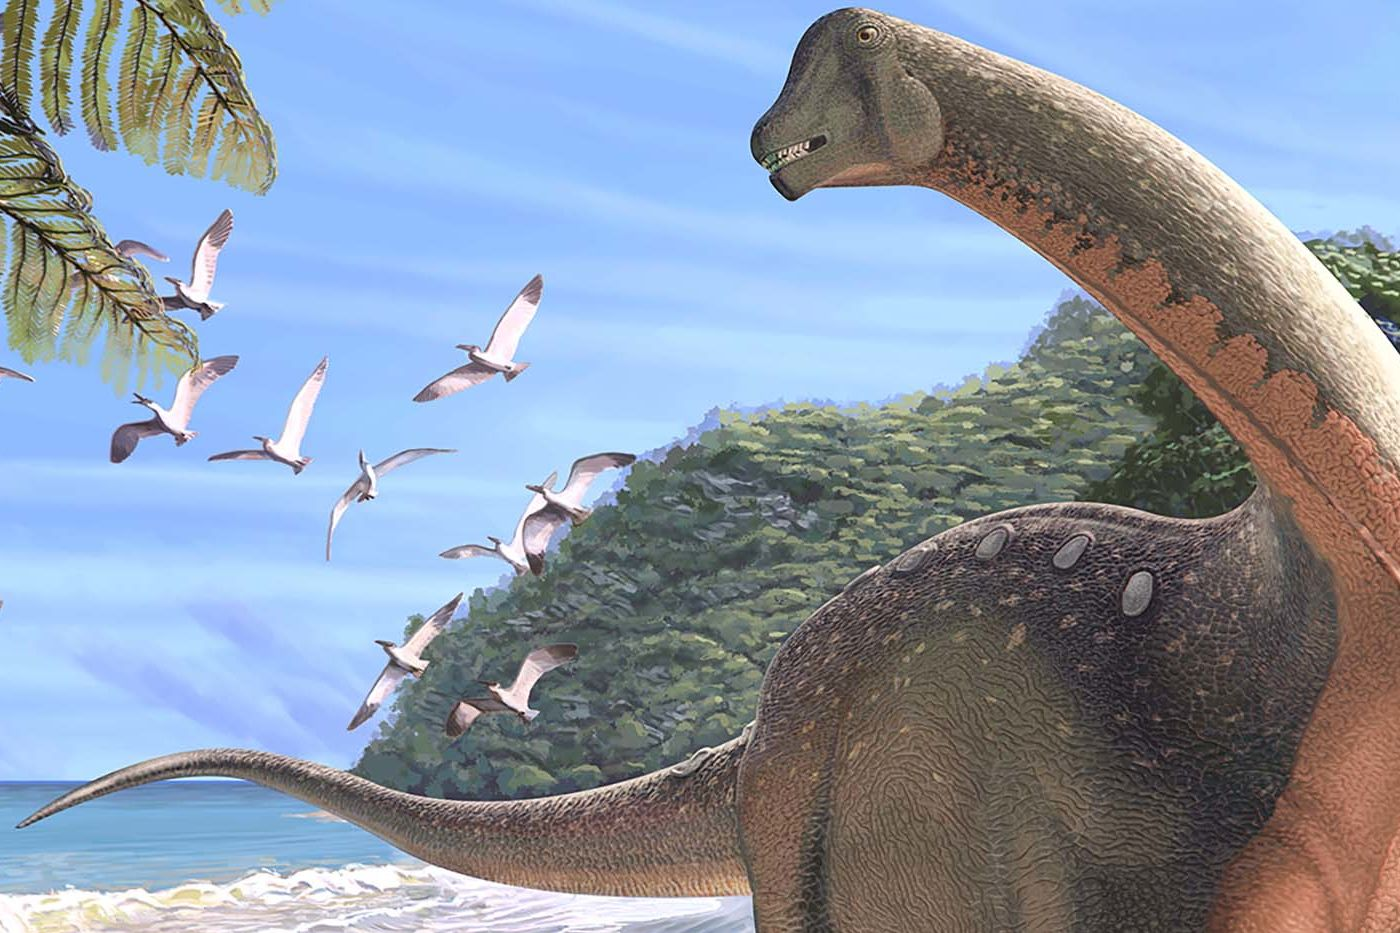 Illustration of a large, long-necked dinosaur on a tropical beach